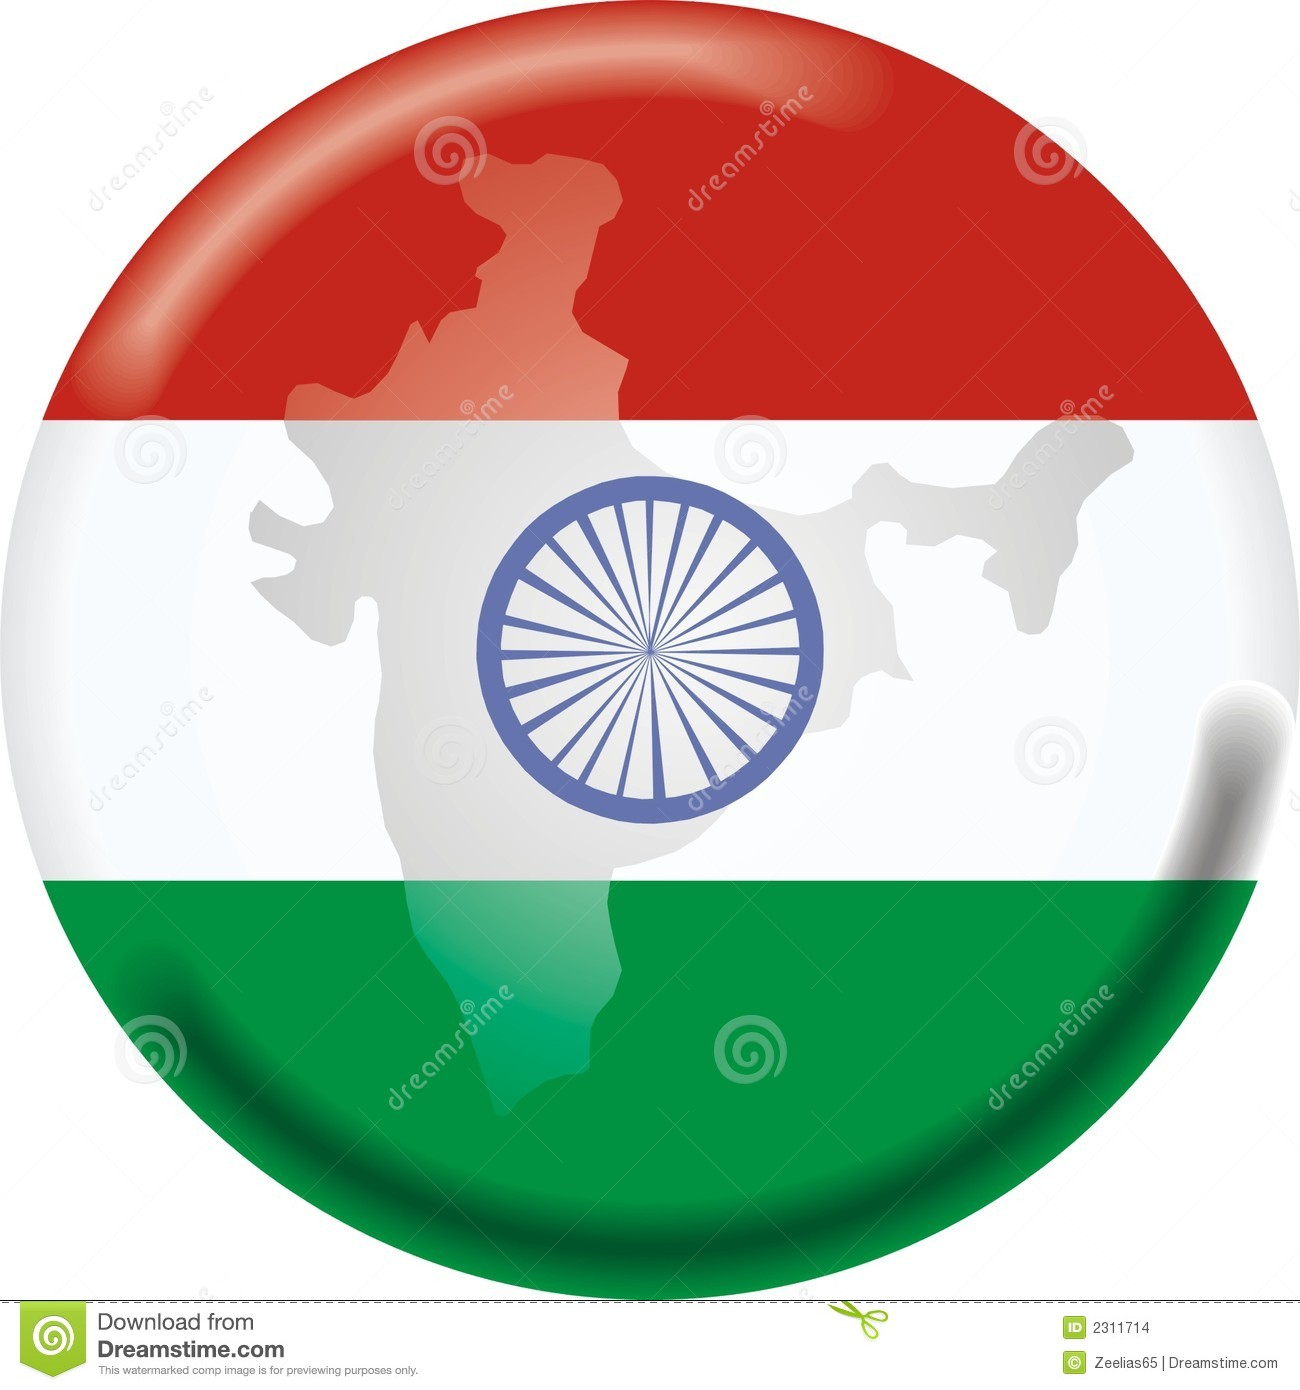 India Map Flag.India Map And Flag Stock Vector Illustration Of Ripple 2311714